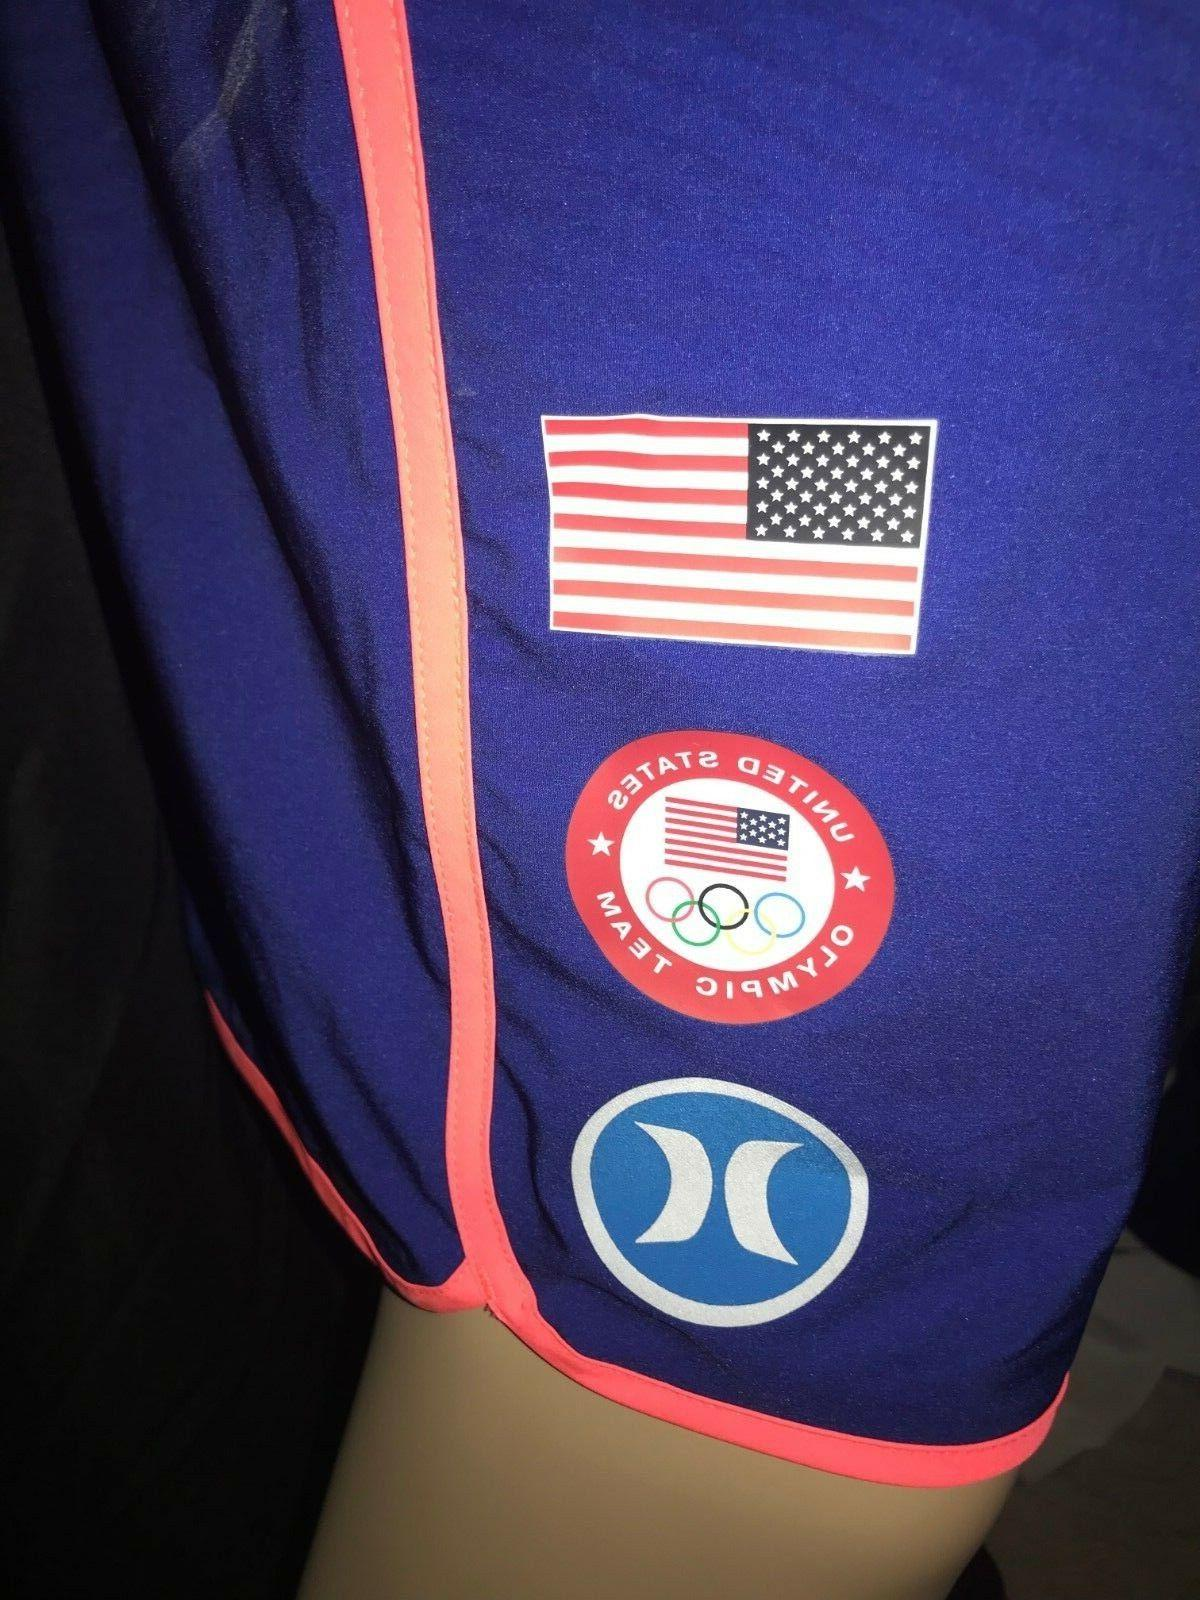 Hurley USA Olympic Team Men's Blue Size 36